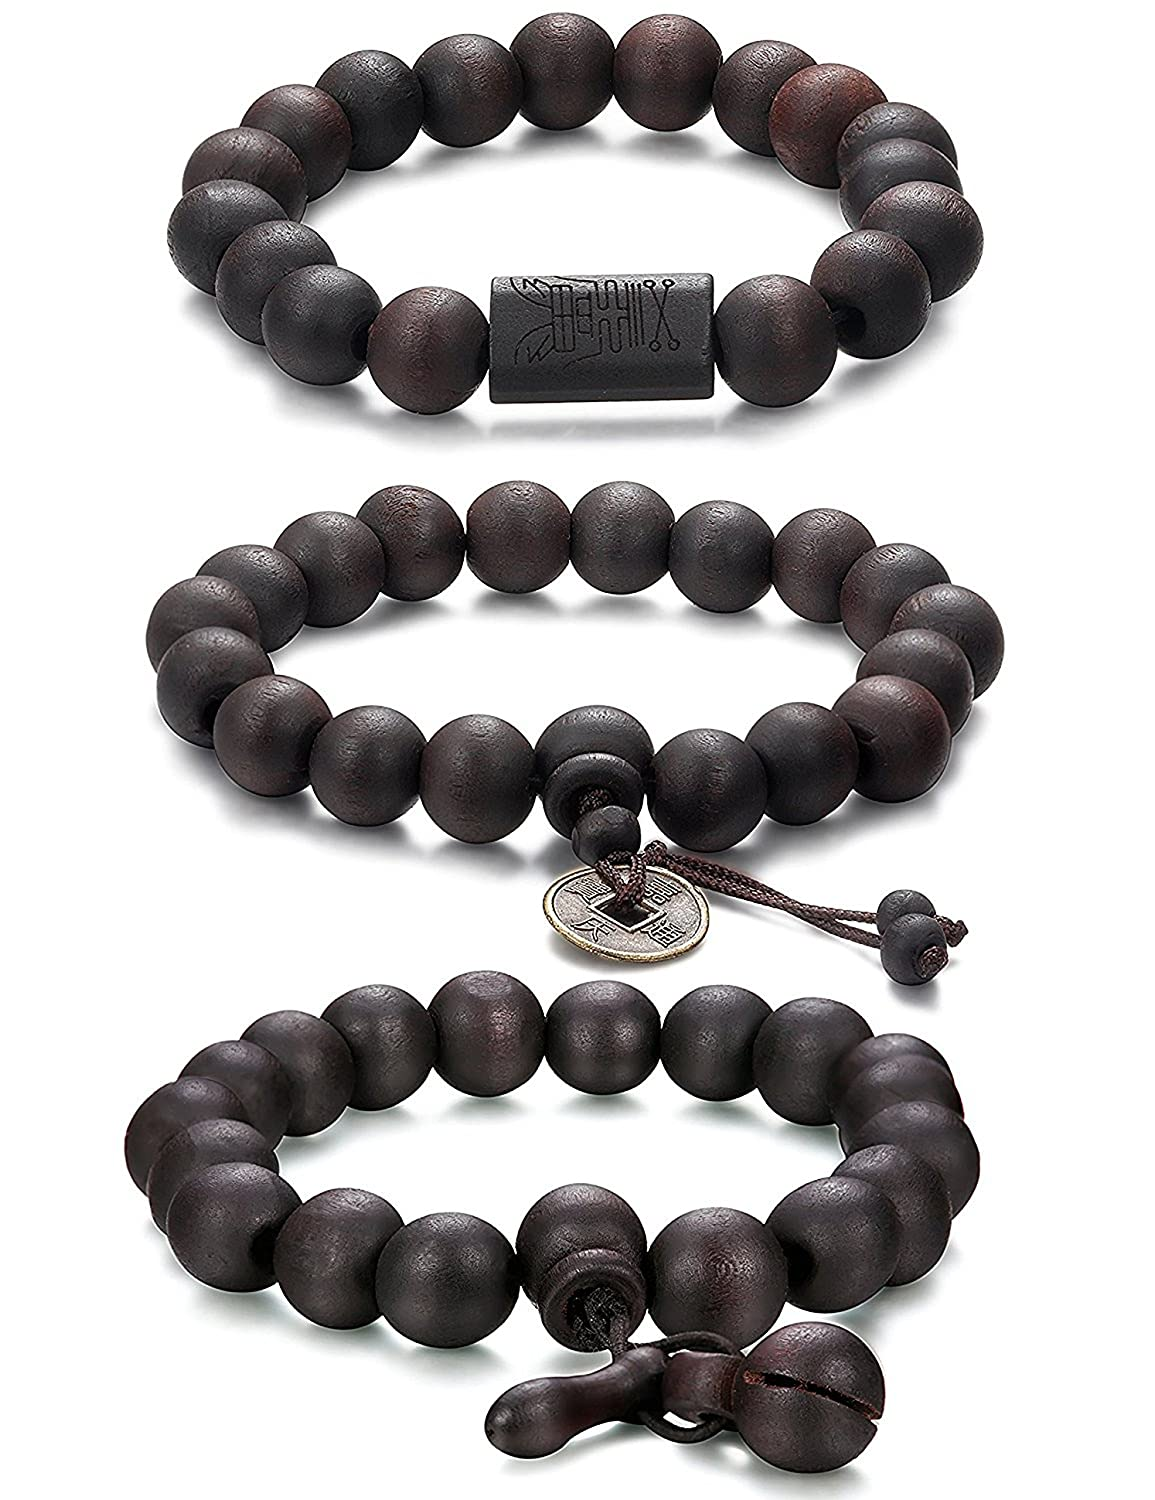 Jstyle 11mm Wood Bead Bracelet Men Women Tibetan Buddhist Prayer Link Cool EU4010